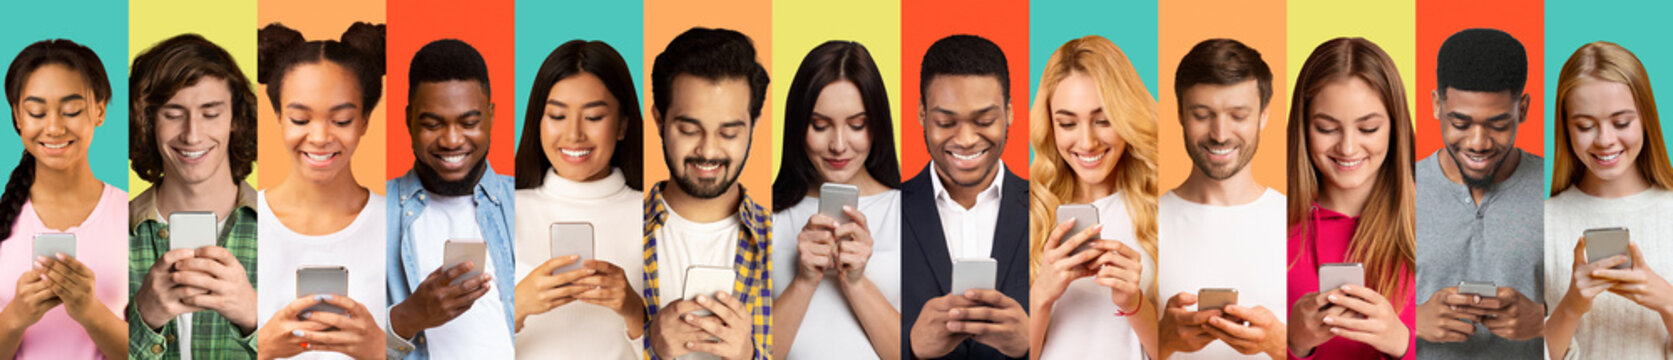 Young People Using Smartphones Texting On Different Colorful Backgrounds, Collage